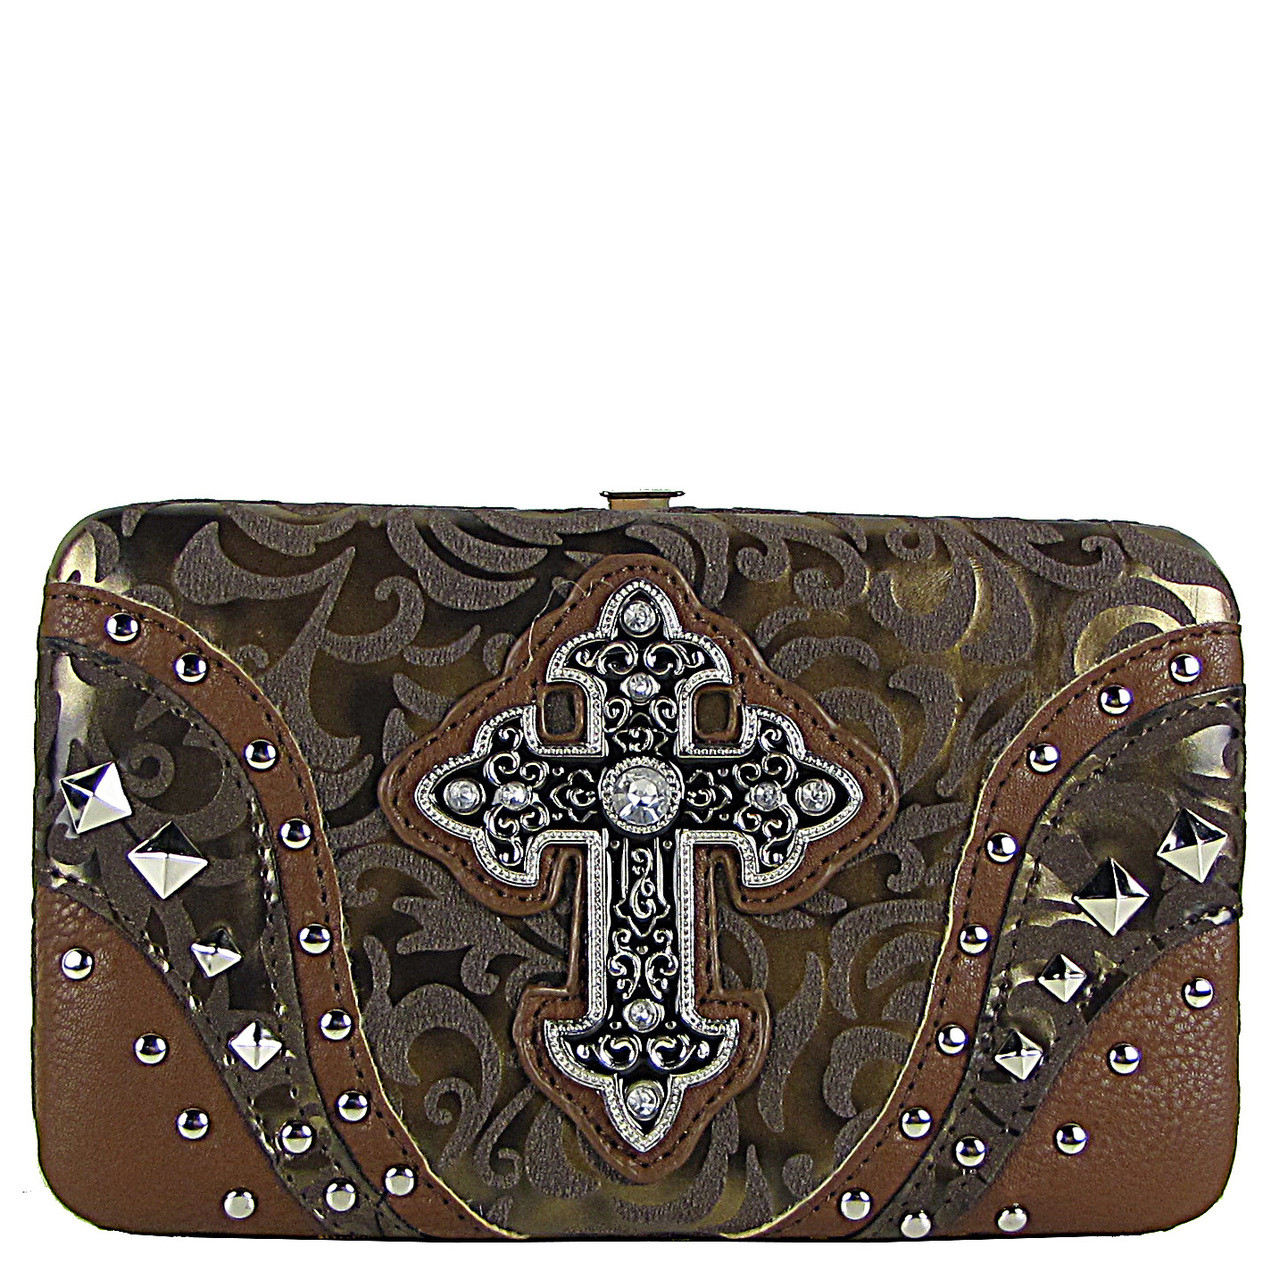 BROWN STUDDED RHINESTONE TOOLED CROSS LOOK FLAT THICK WALLET FW2-04113BRN